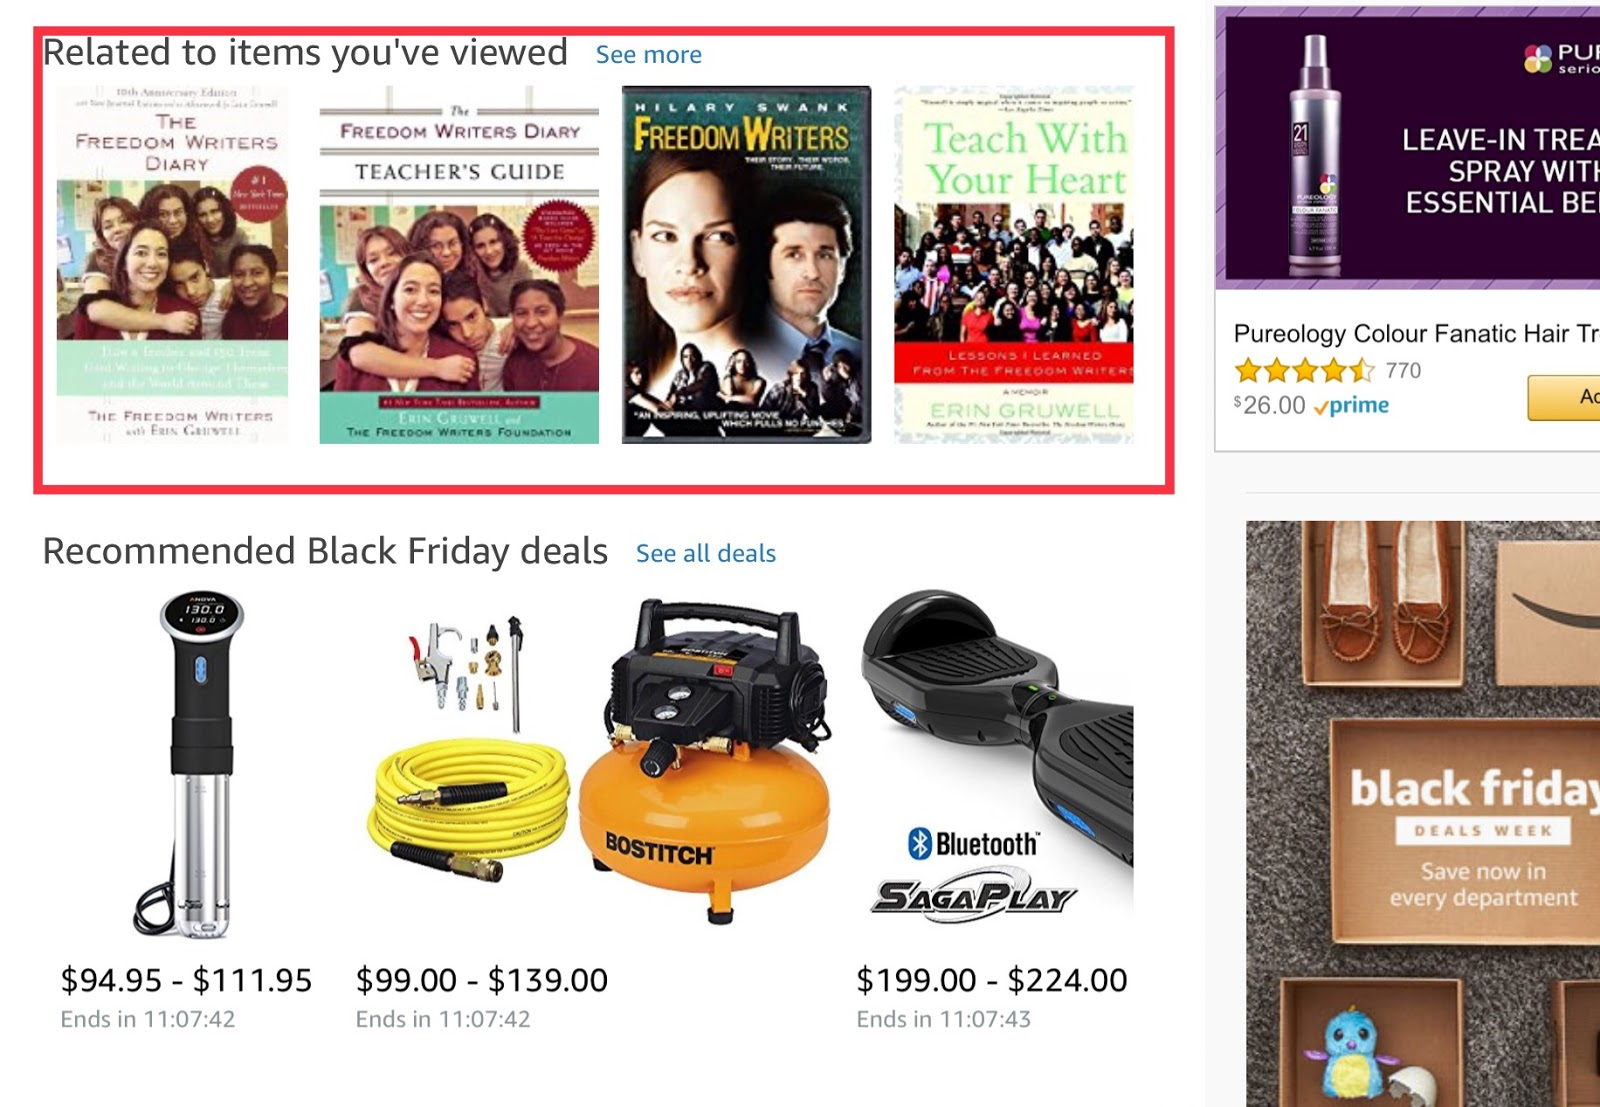 Amazon isn't coy about tracking items you've viewed.